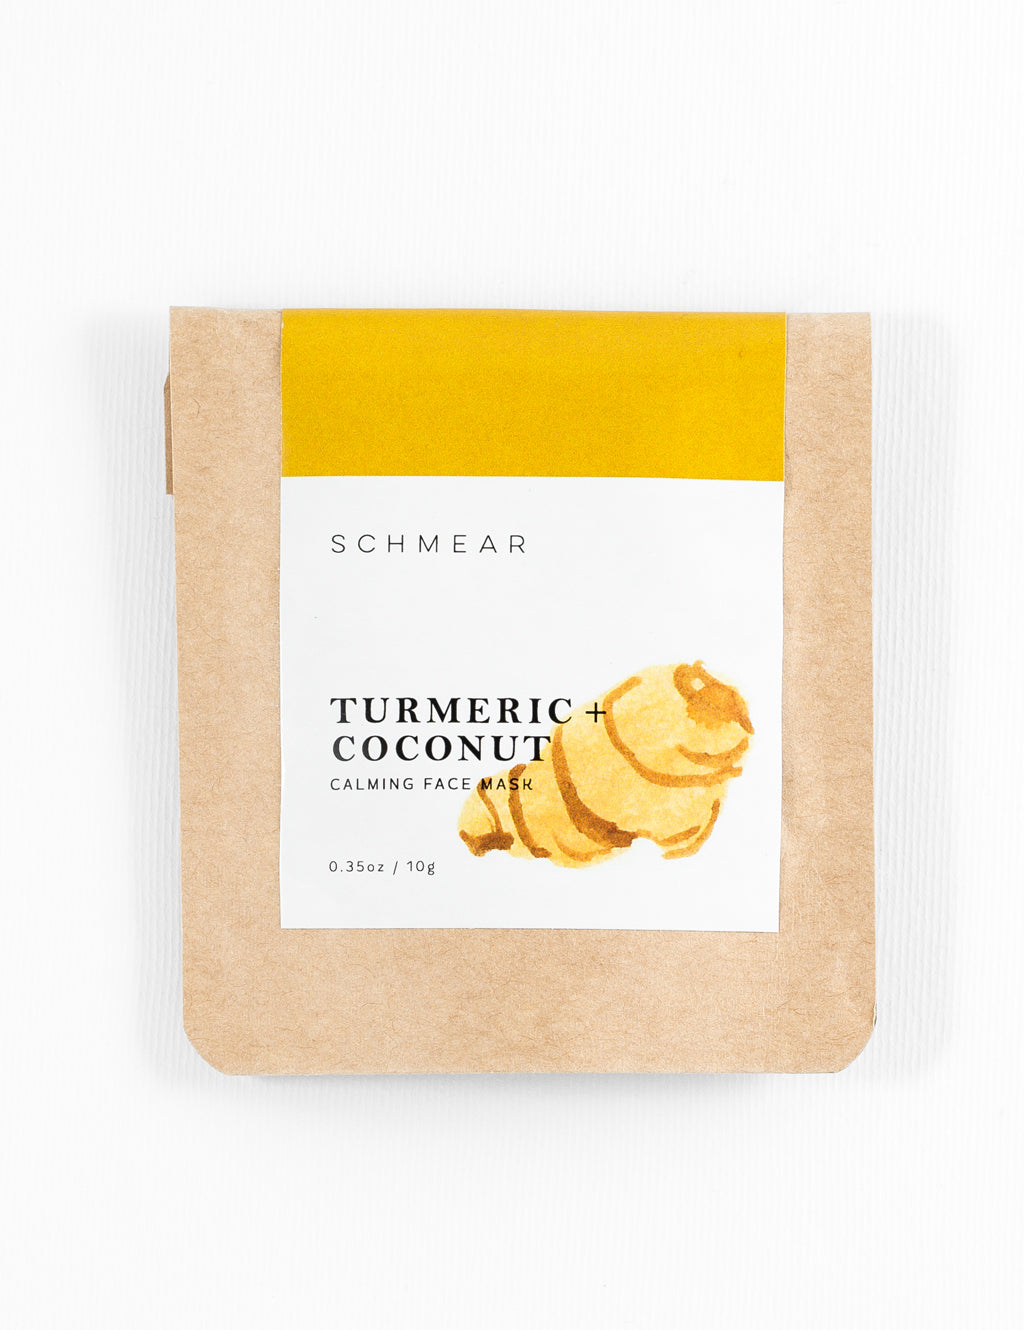 Turmeric and Coconut Calming Face Mask Mini Size for Skincare